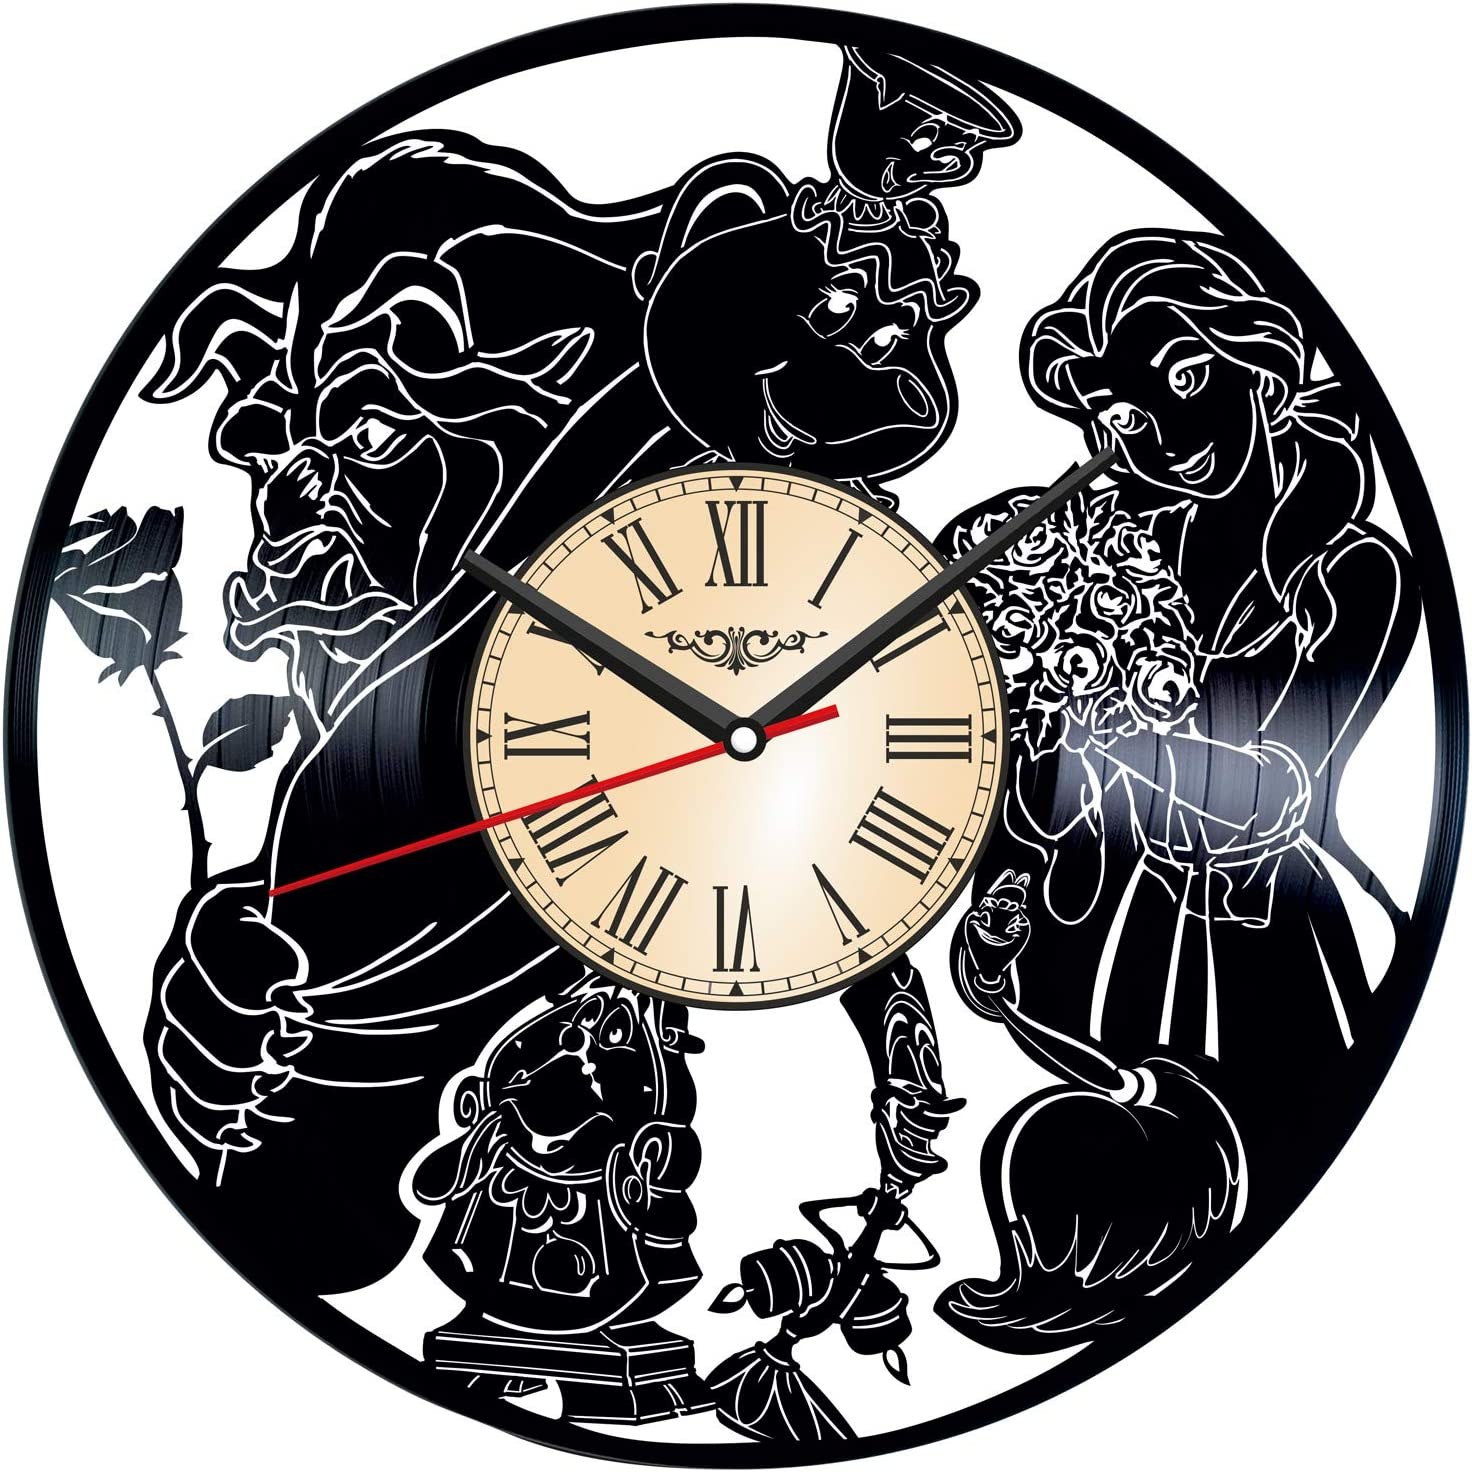 Beauty and The Beast Vinyl Wall Art Clock - Home Decor for Him Her Birthday Christmas Anniversary - Themed Clock for Cartoon Lovers Fans - Kids Living Room Kitchen Wall Art - 12 Inches